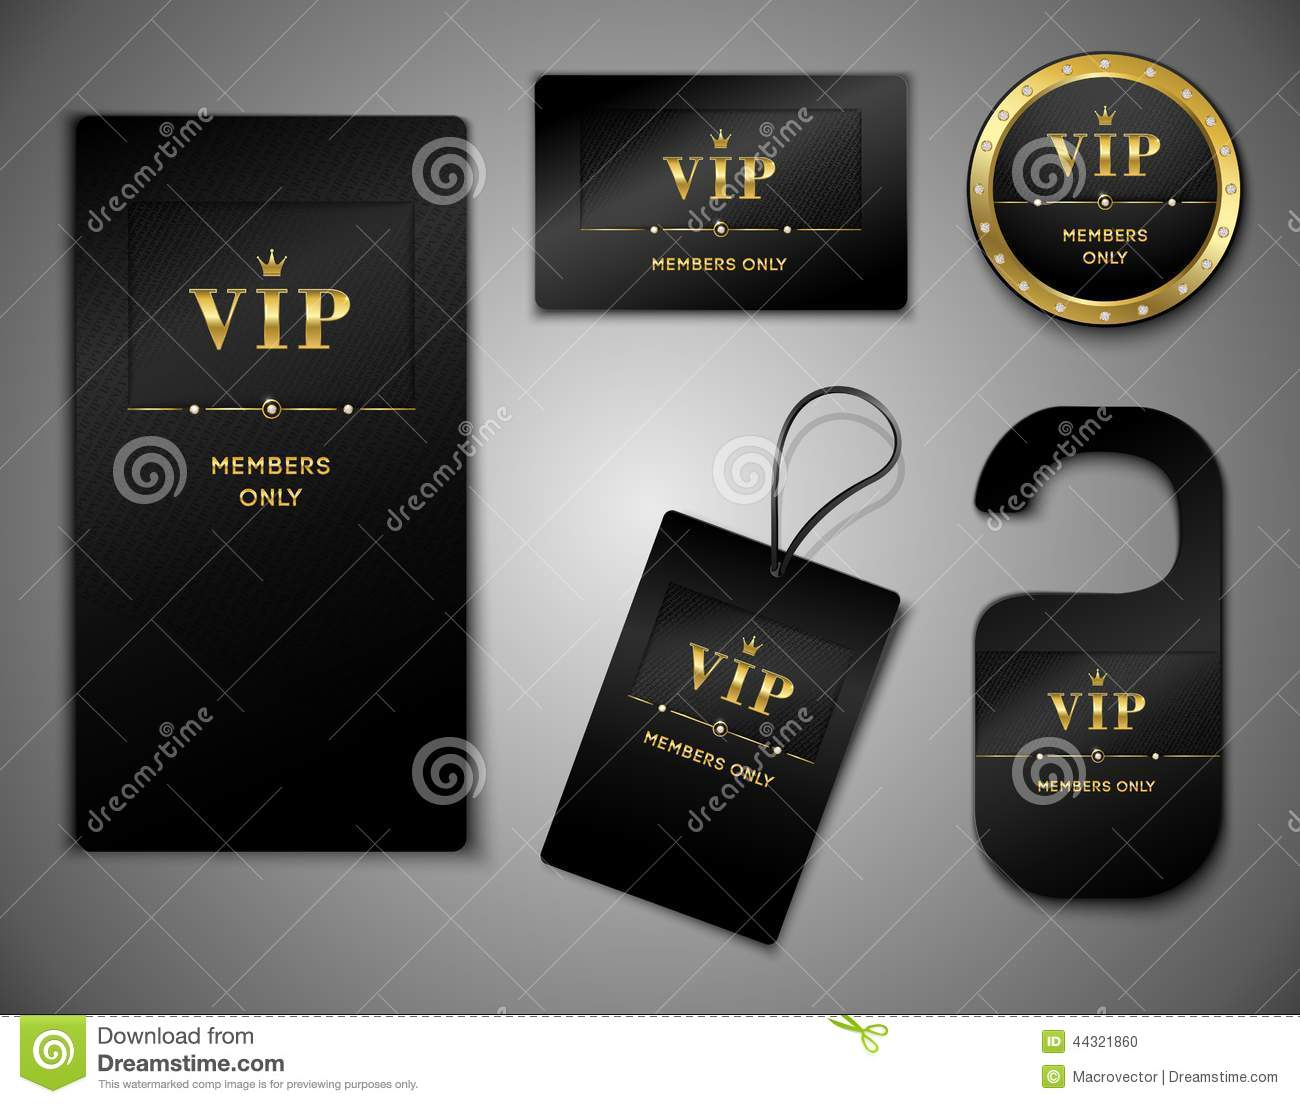 Vip Cards Design Template Stock Vector - Image: 44321860